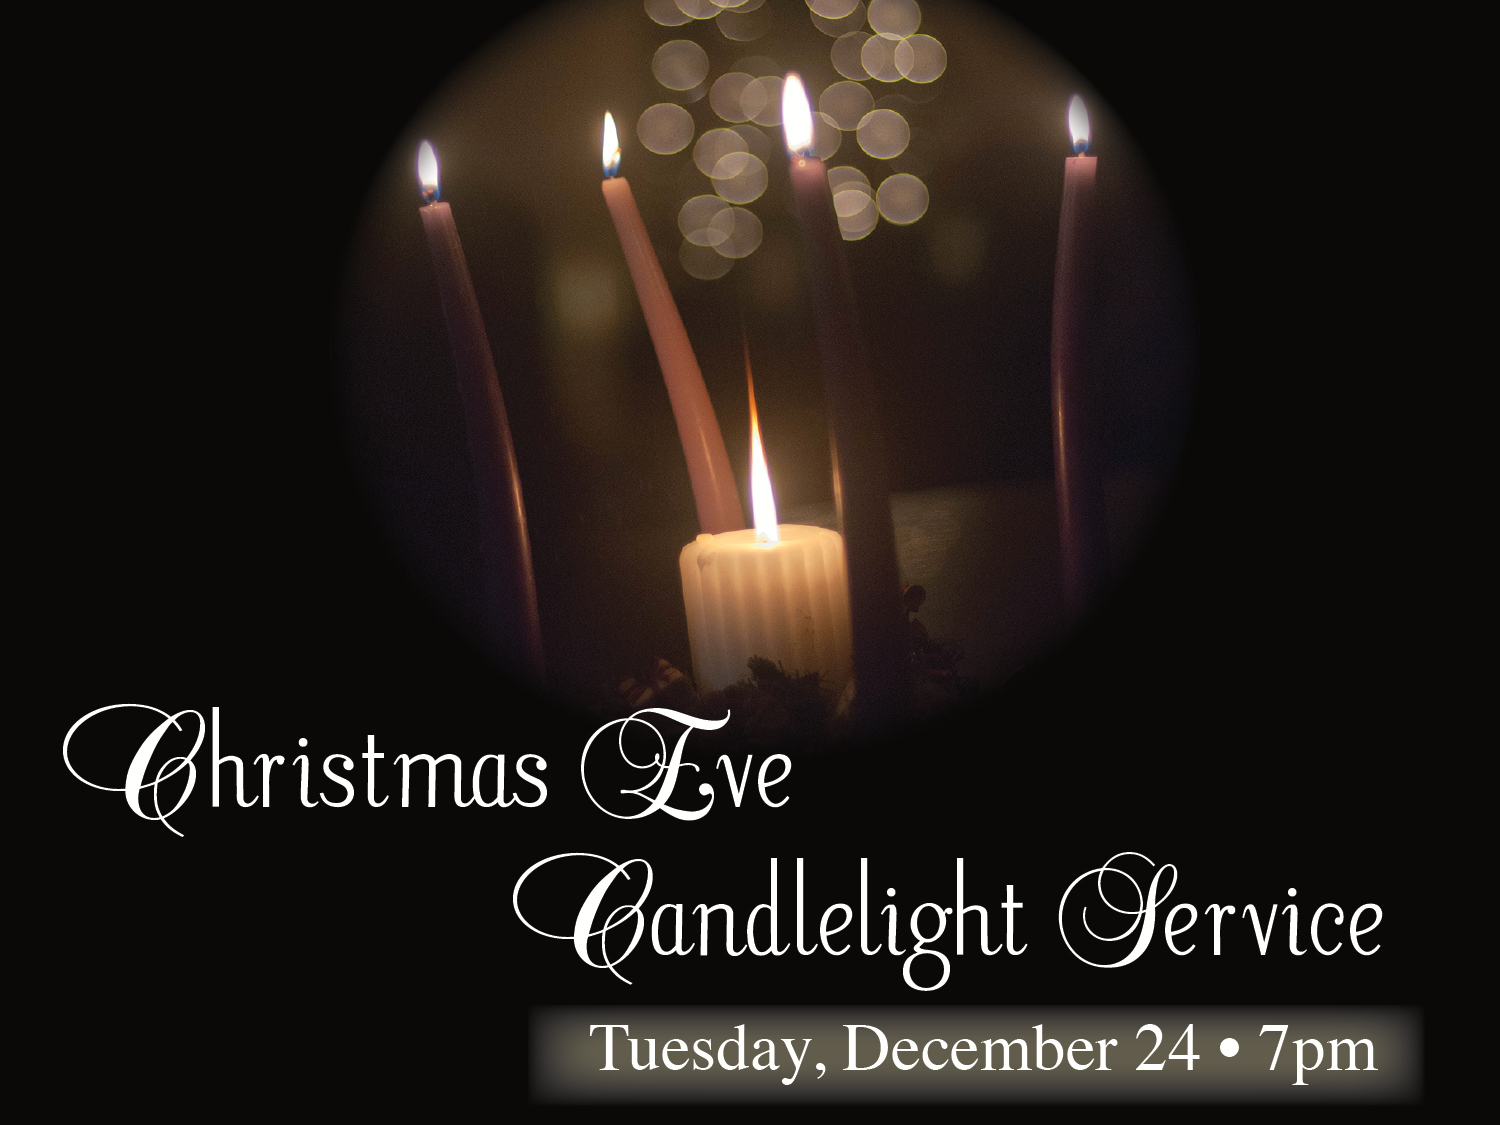 Christmas Eve Candlelight Service @ The MACC | Pittston | Pennsylvania | United States